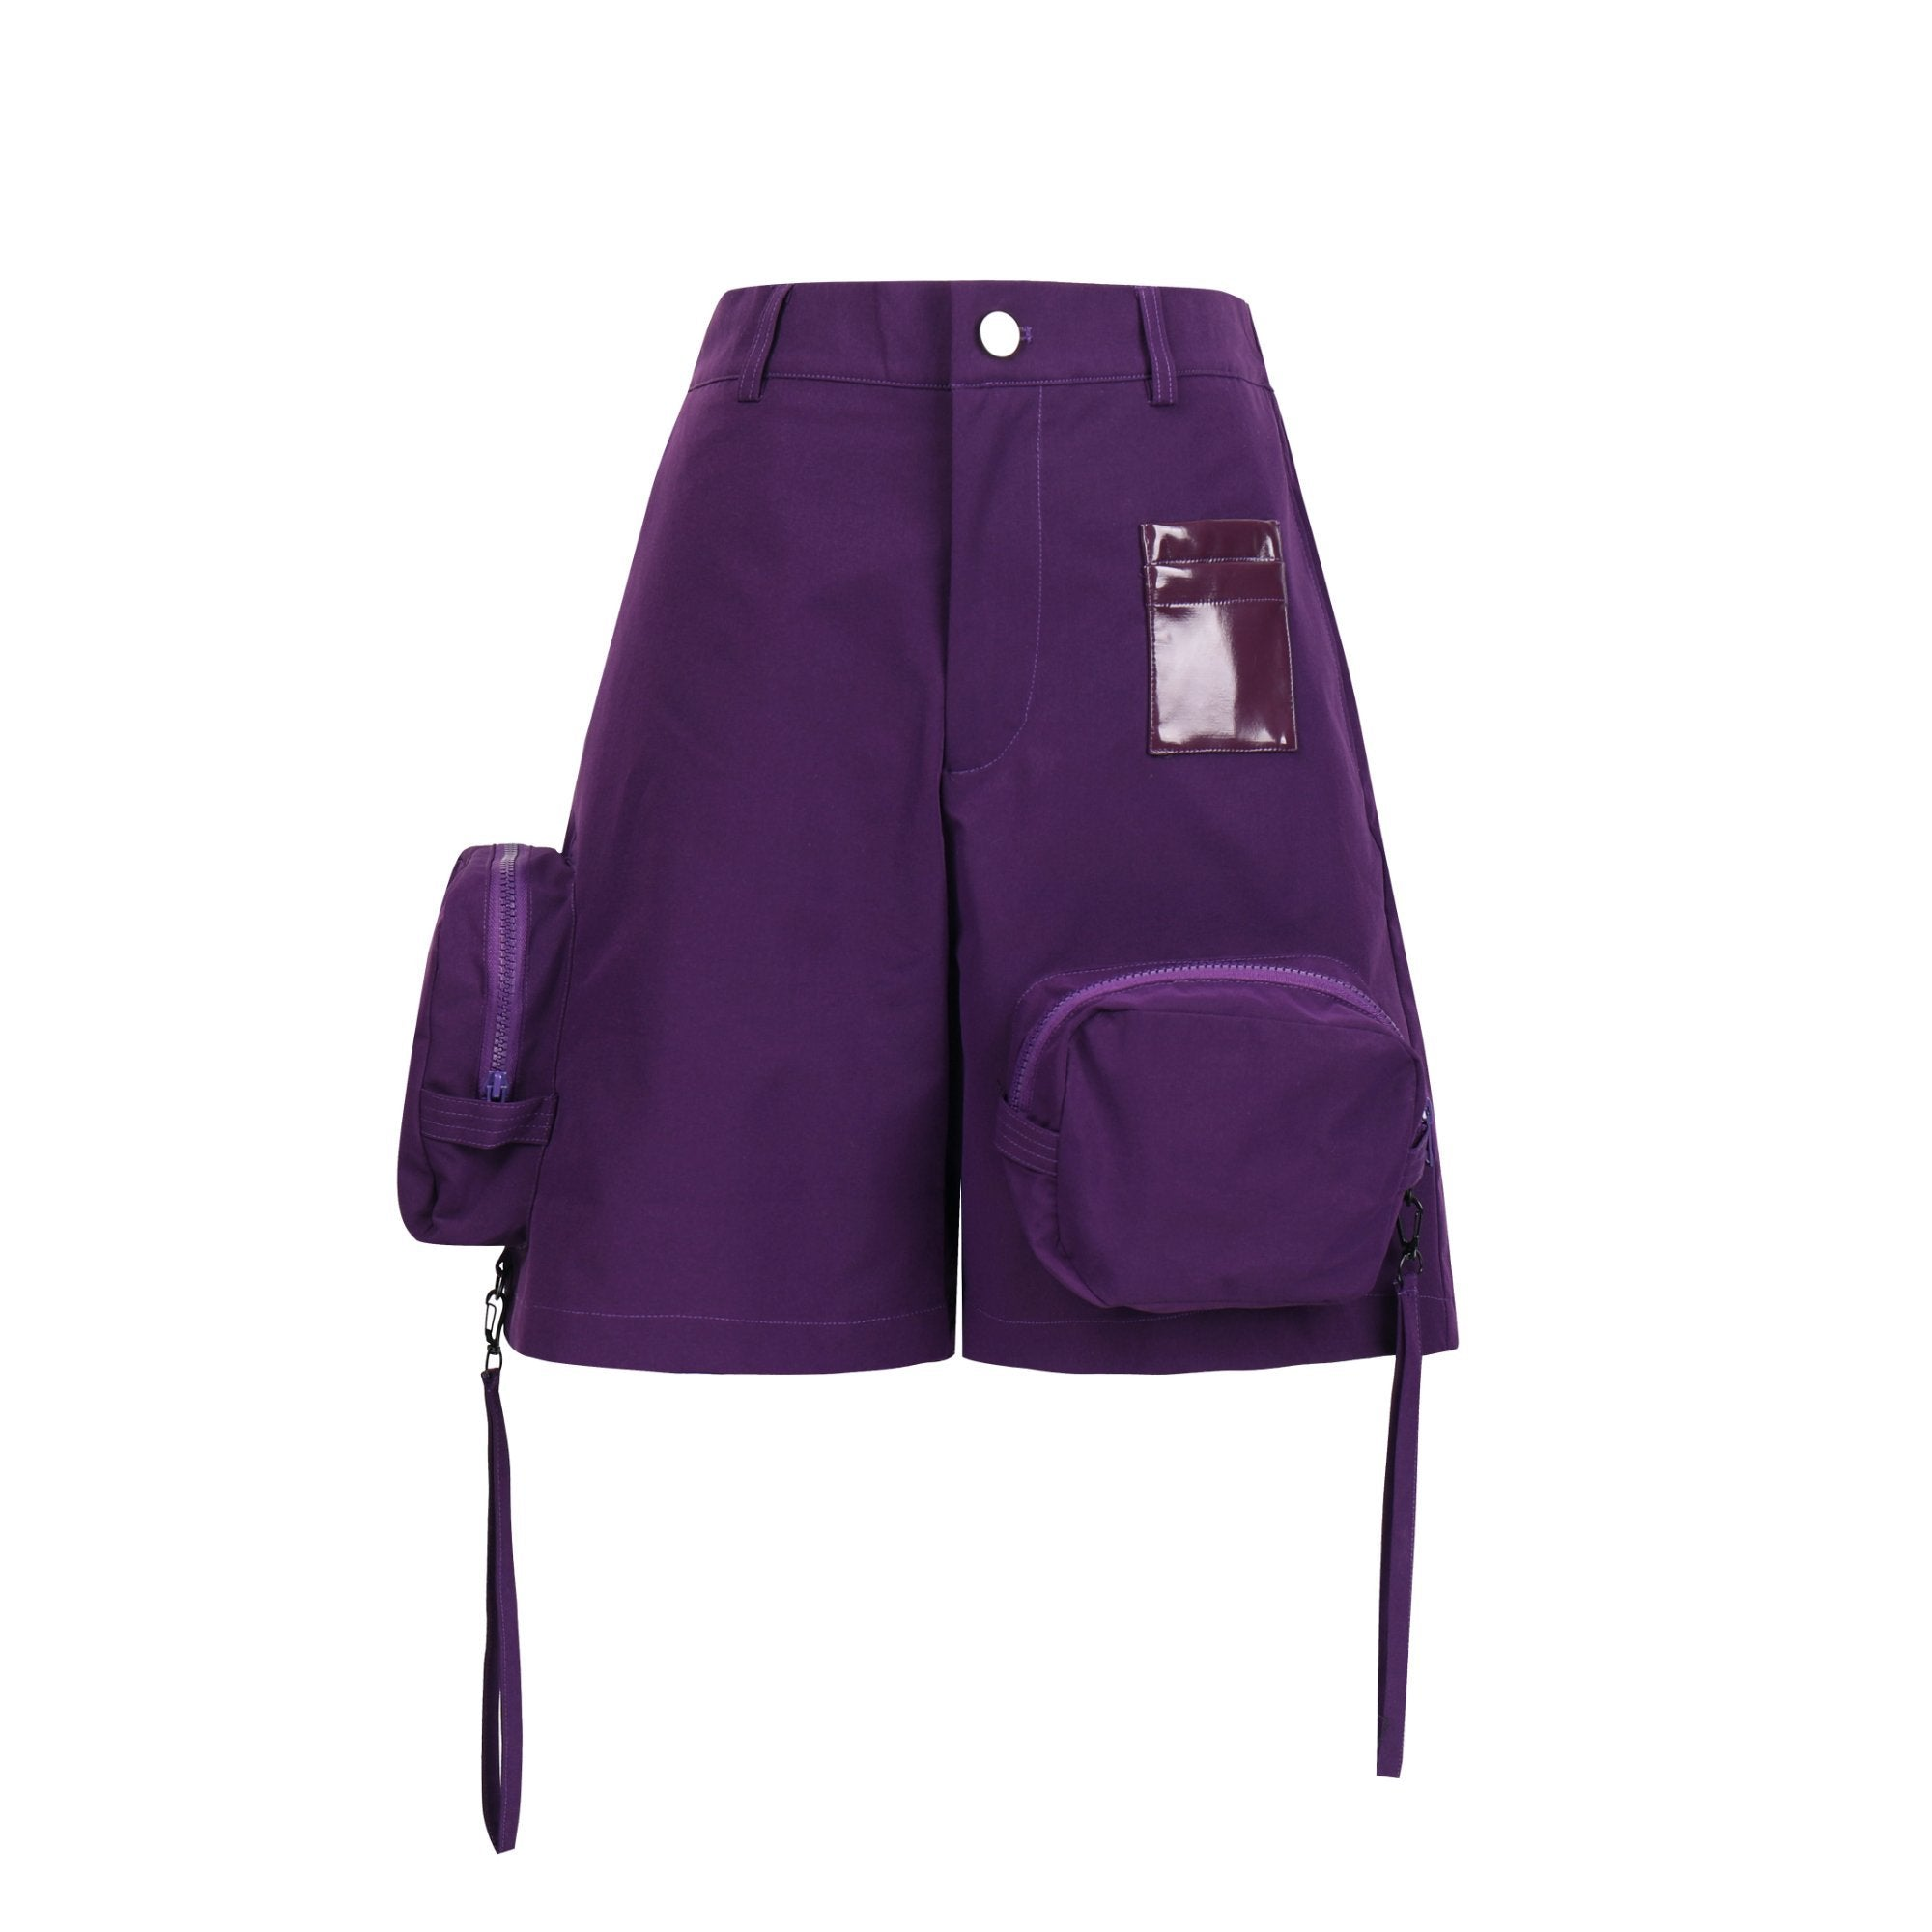 ONOFFON Purple CardHolder Shorts | MADA IN CHINA